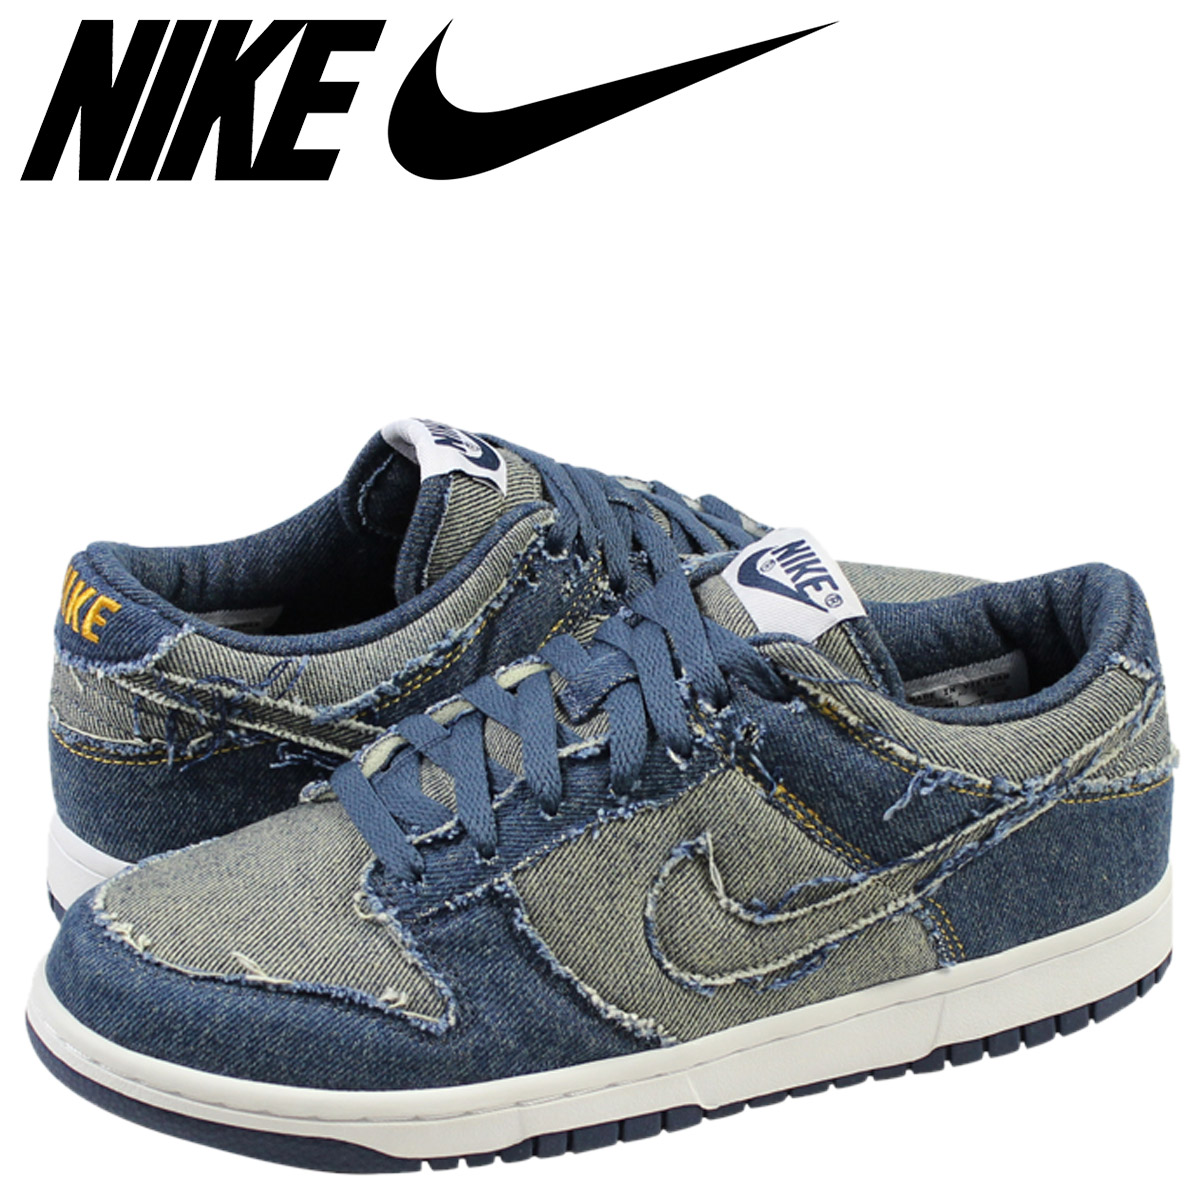 new concept 3e0ef 81cc6 ... promo code for nike nike dunk sneakers dunk low cl limited denim dunk  low limited denim